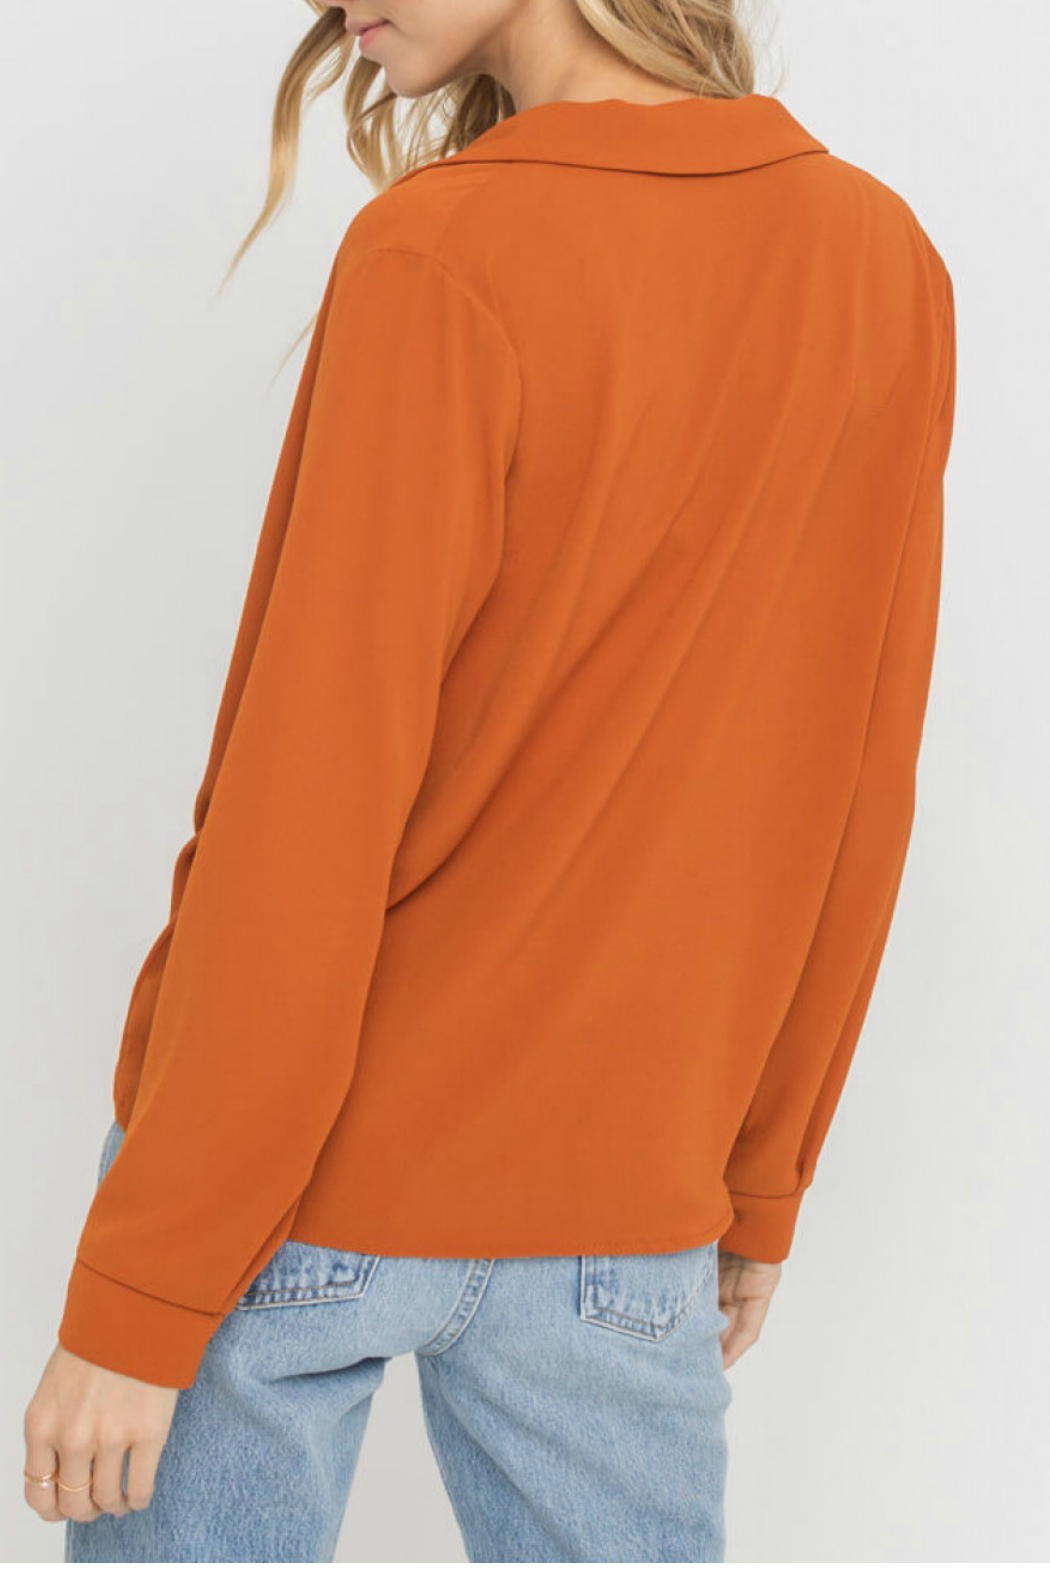 Lush  Notched Lapel Collar Blouse - Side Cropped Image